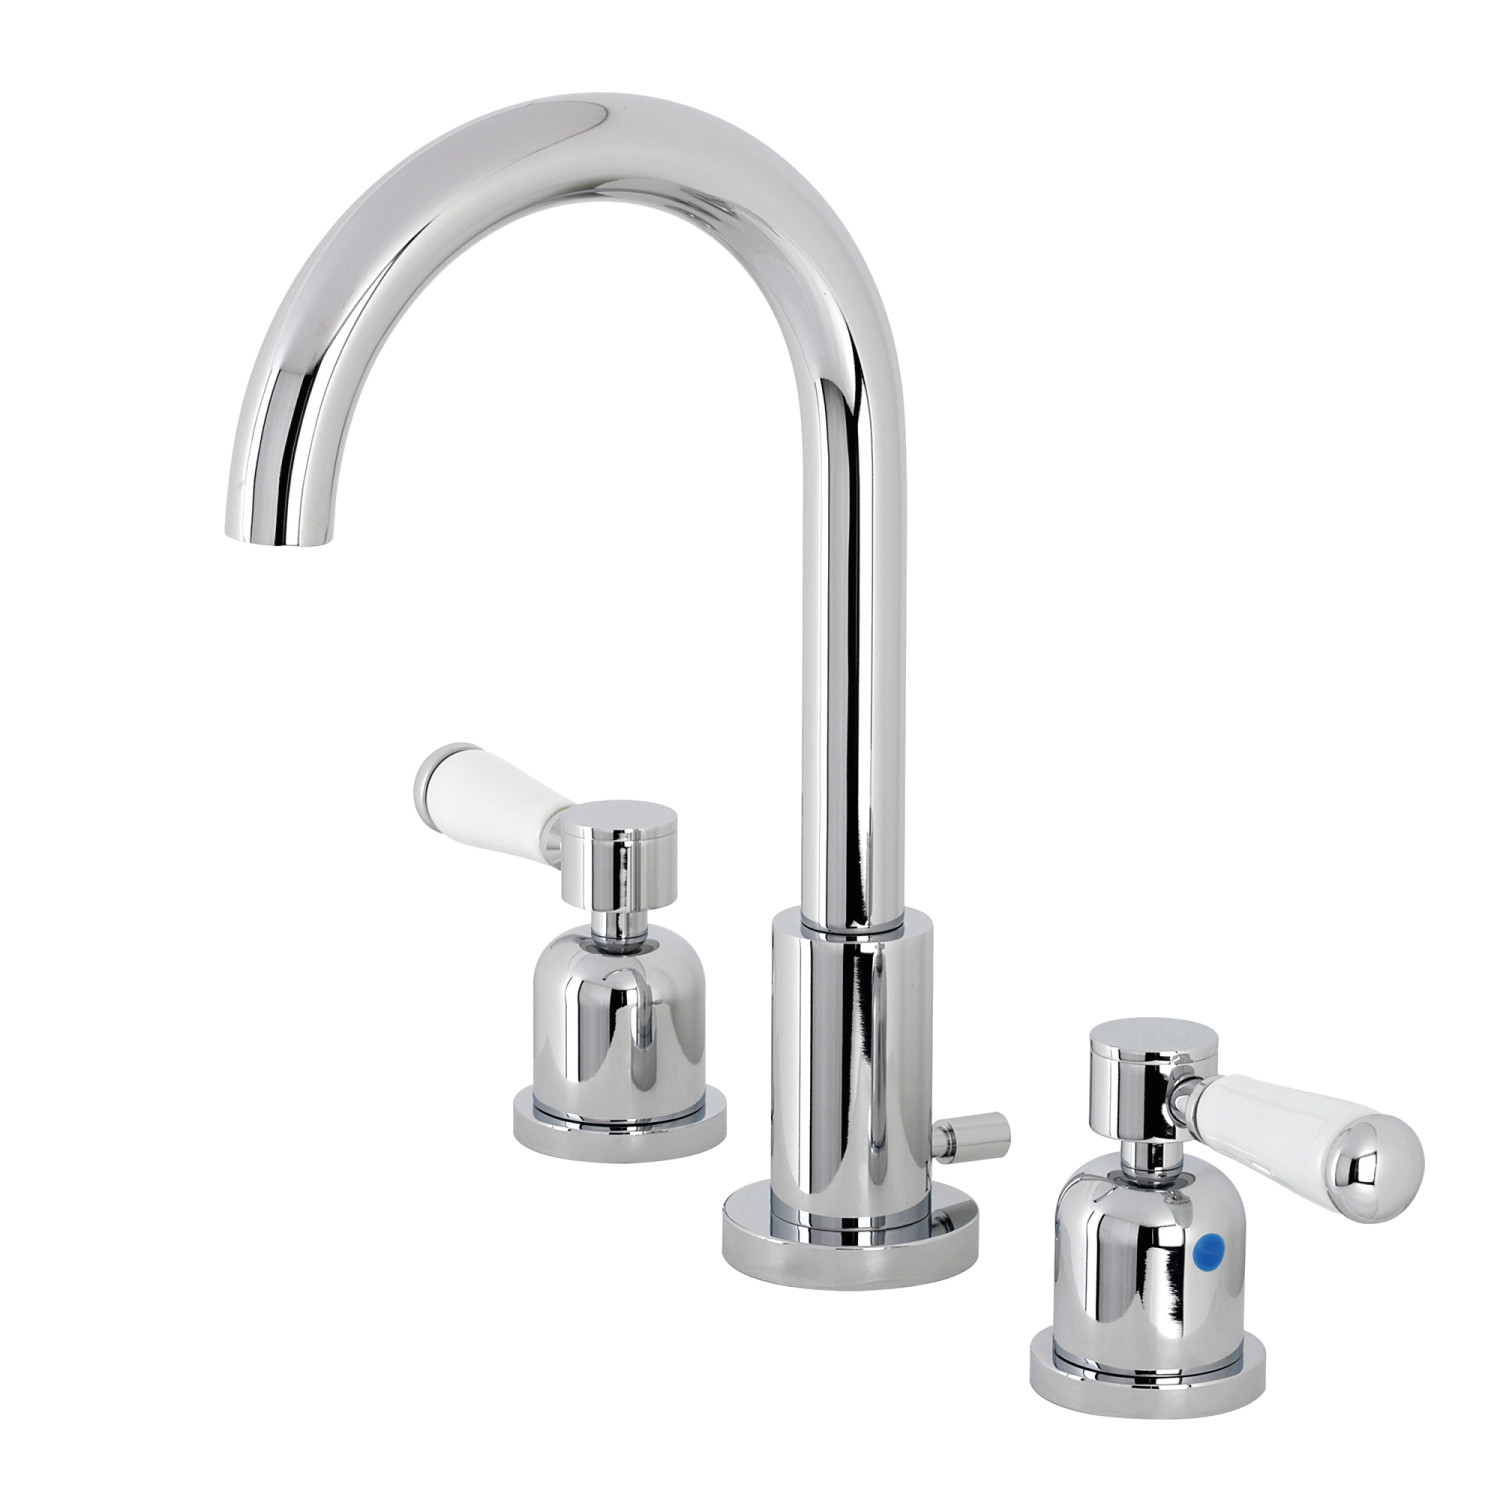 Modern Two-Handle 3-Hole Deck Mounted Widespread Bathroom Faucet with Brass Pop-Up in Polished Chrome with 7 Finish Options